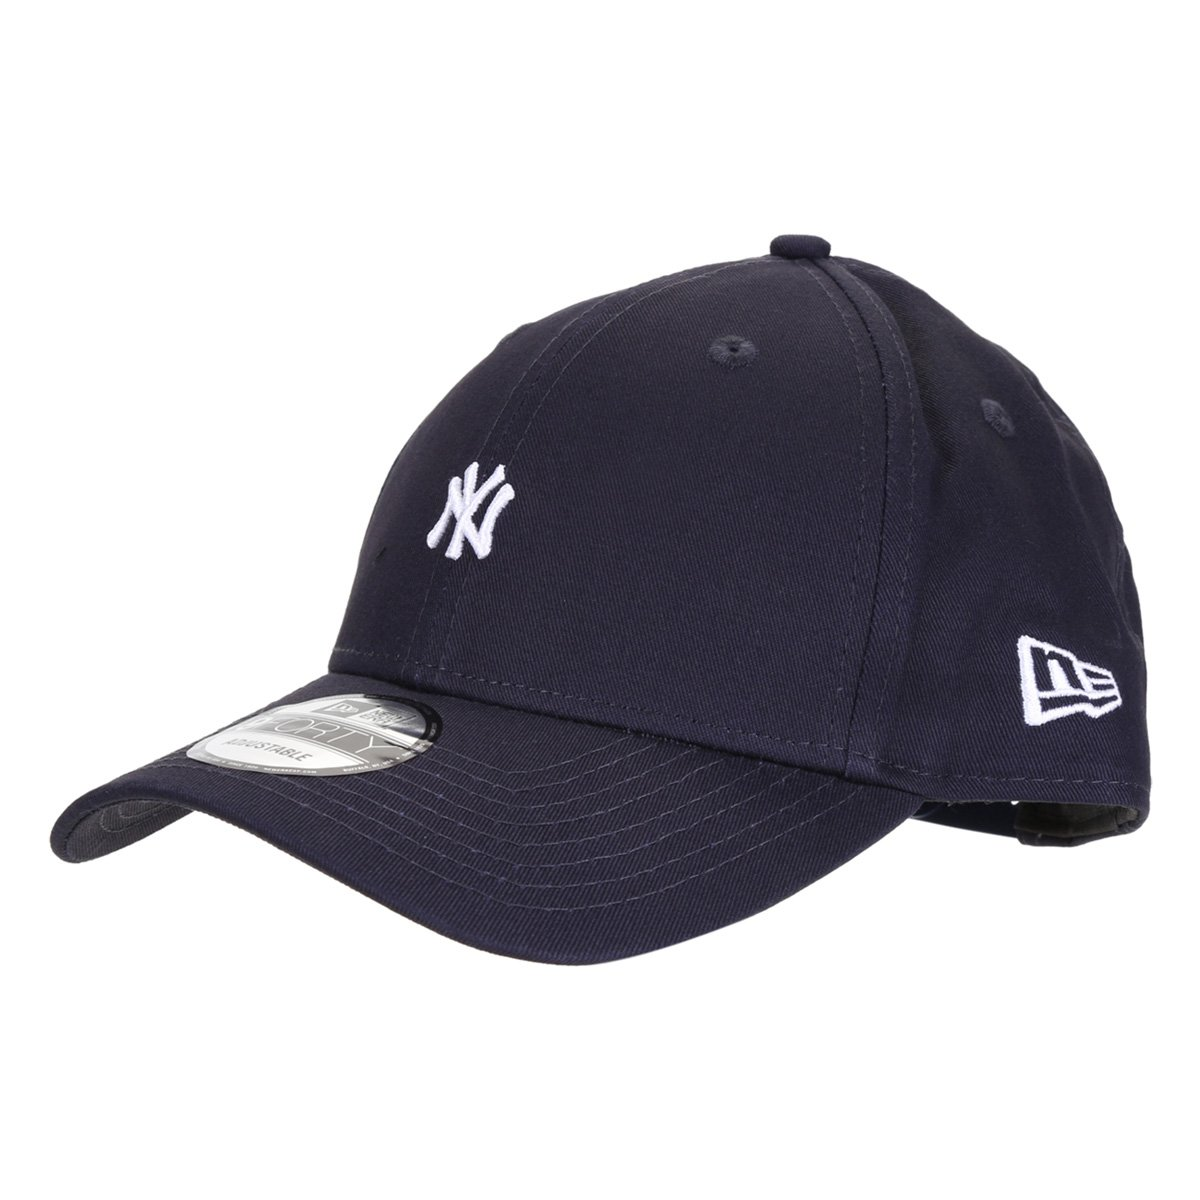 Boné New Era MLB New York Yankees Aba Curva Snapback 940 Mini Logo